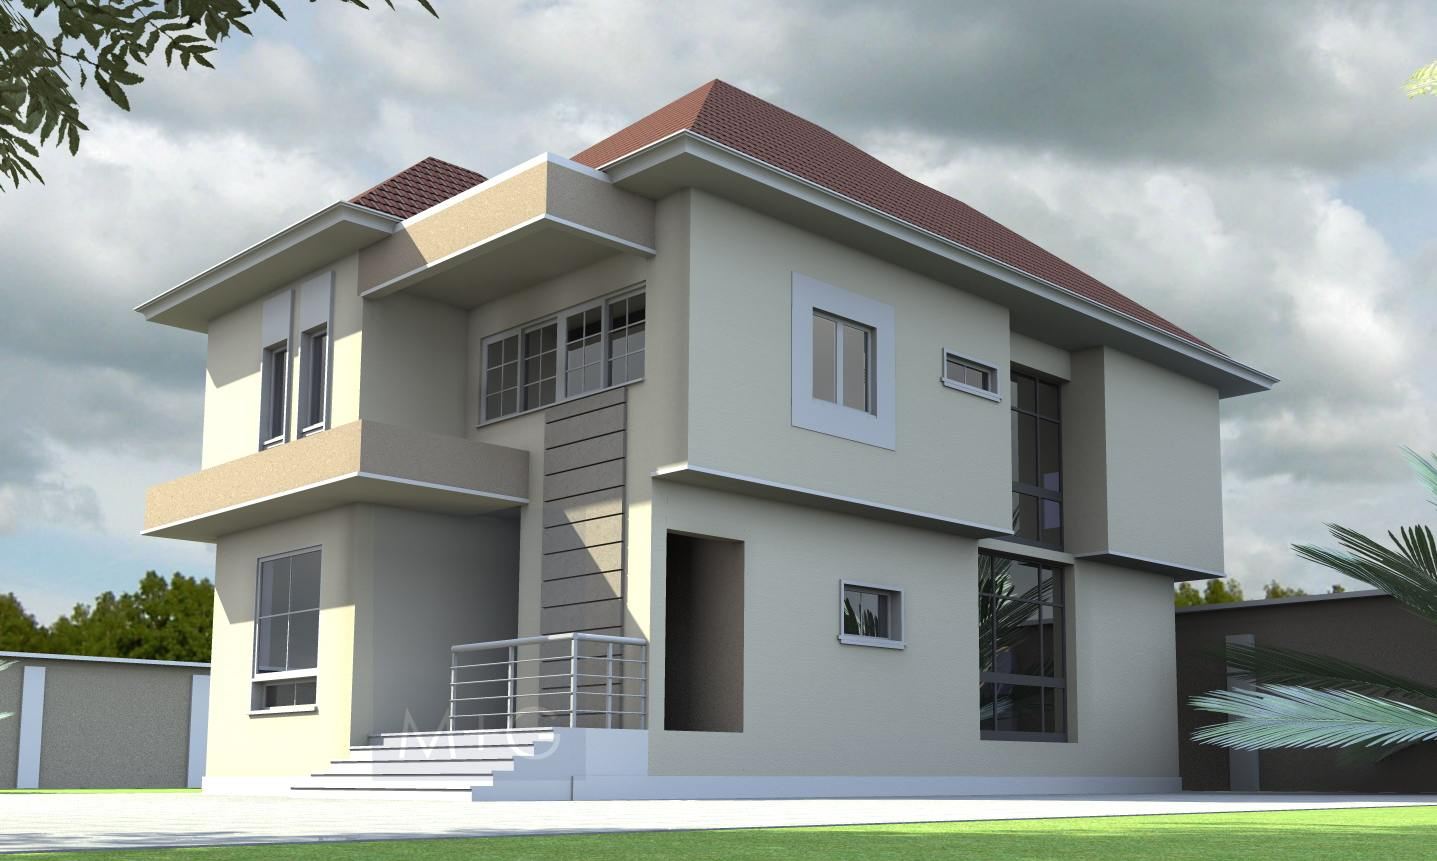 Stylish two bedroom duplex spreading design ideas for house for Modern house designs in nigeria